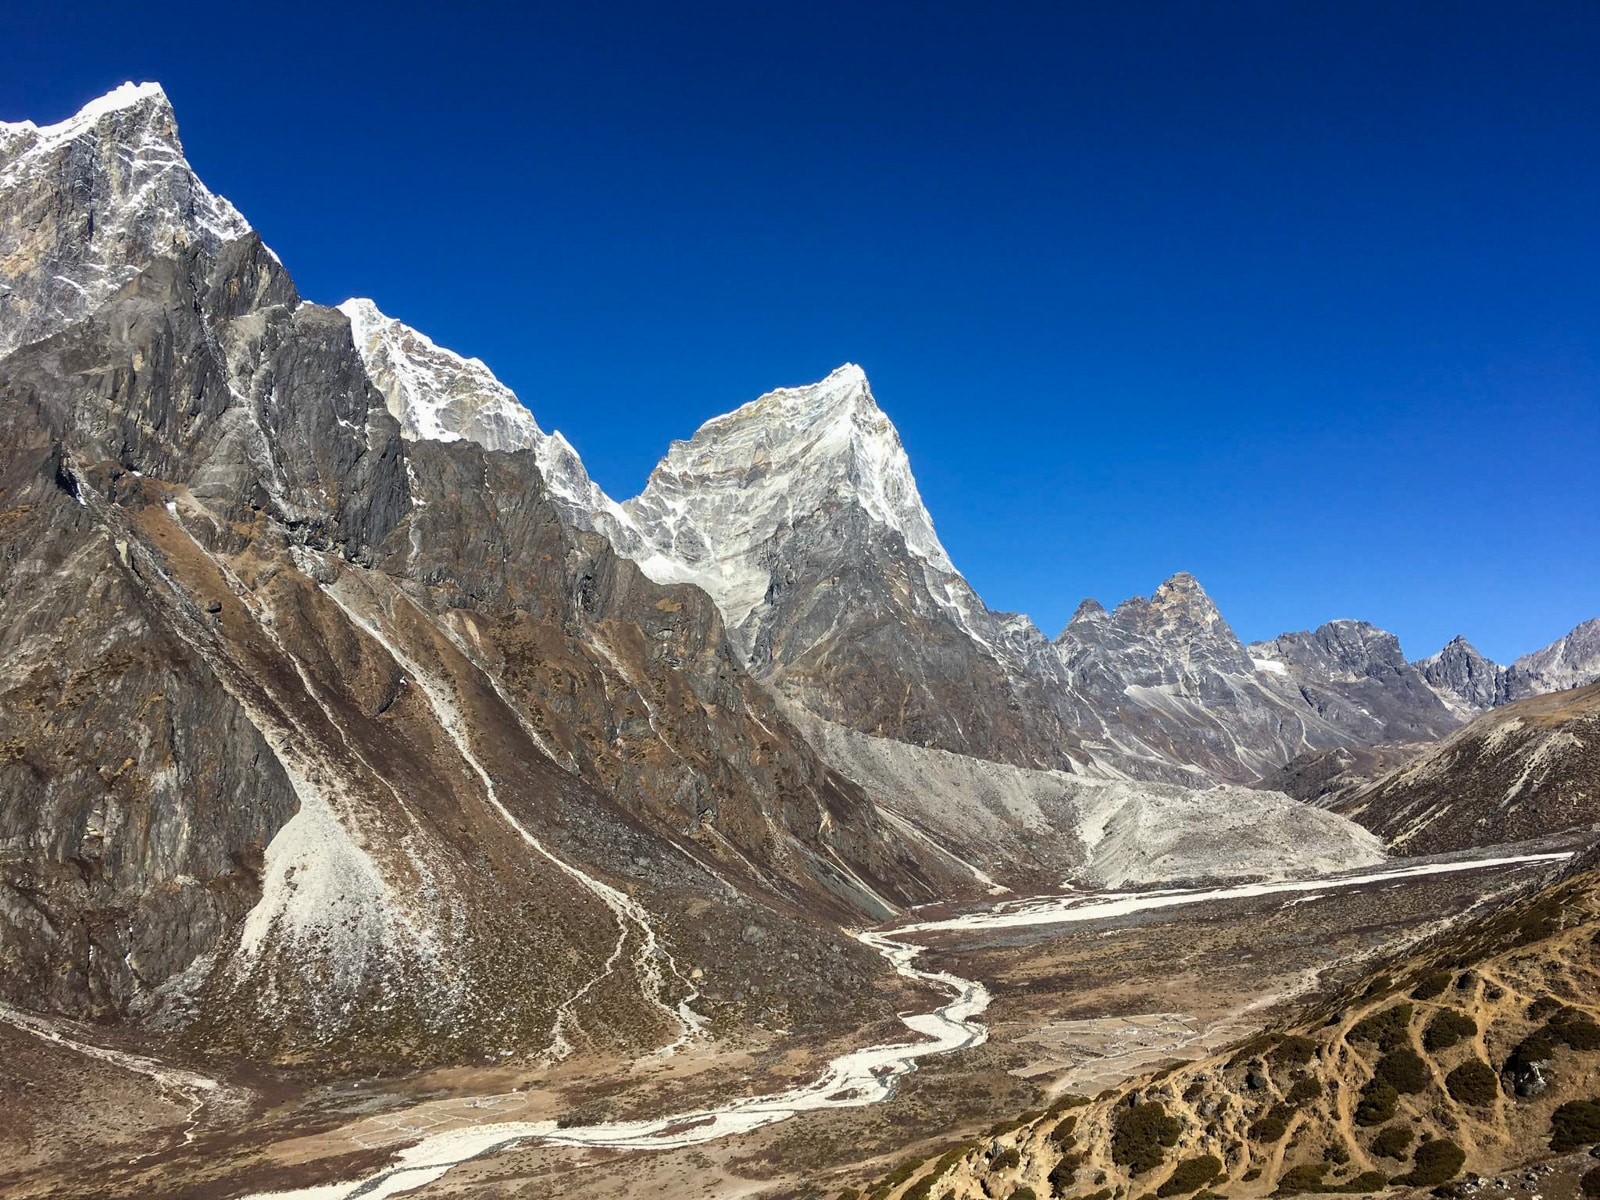 Mountain-lined valley near Dughla along the Everest Base Camp trail in Nepal